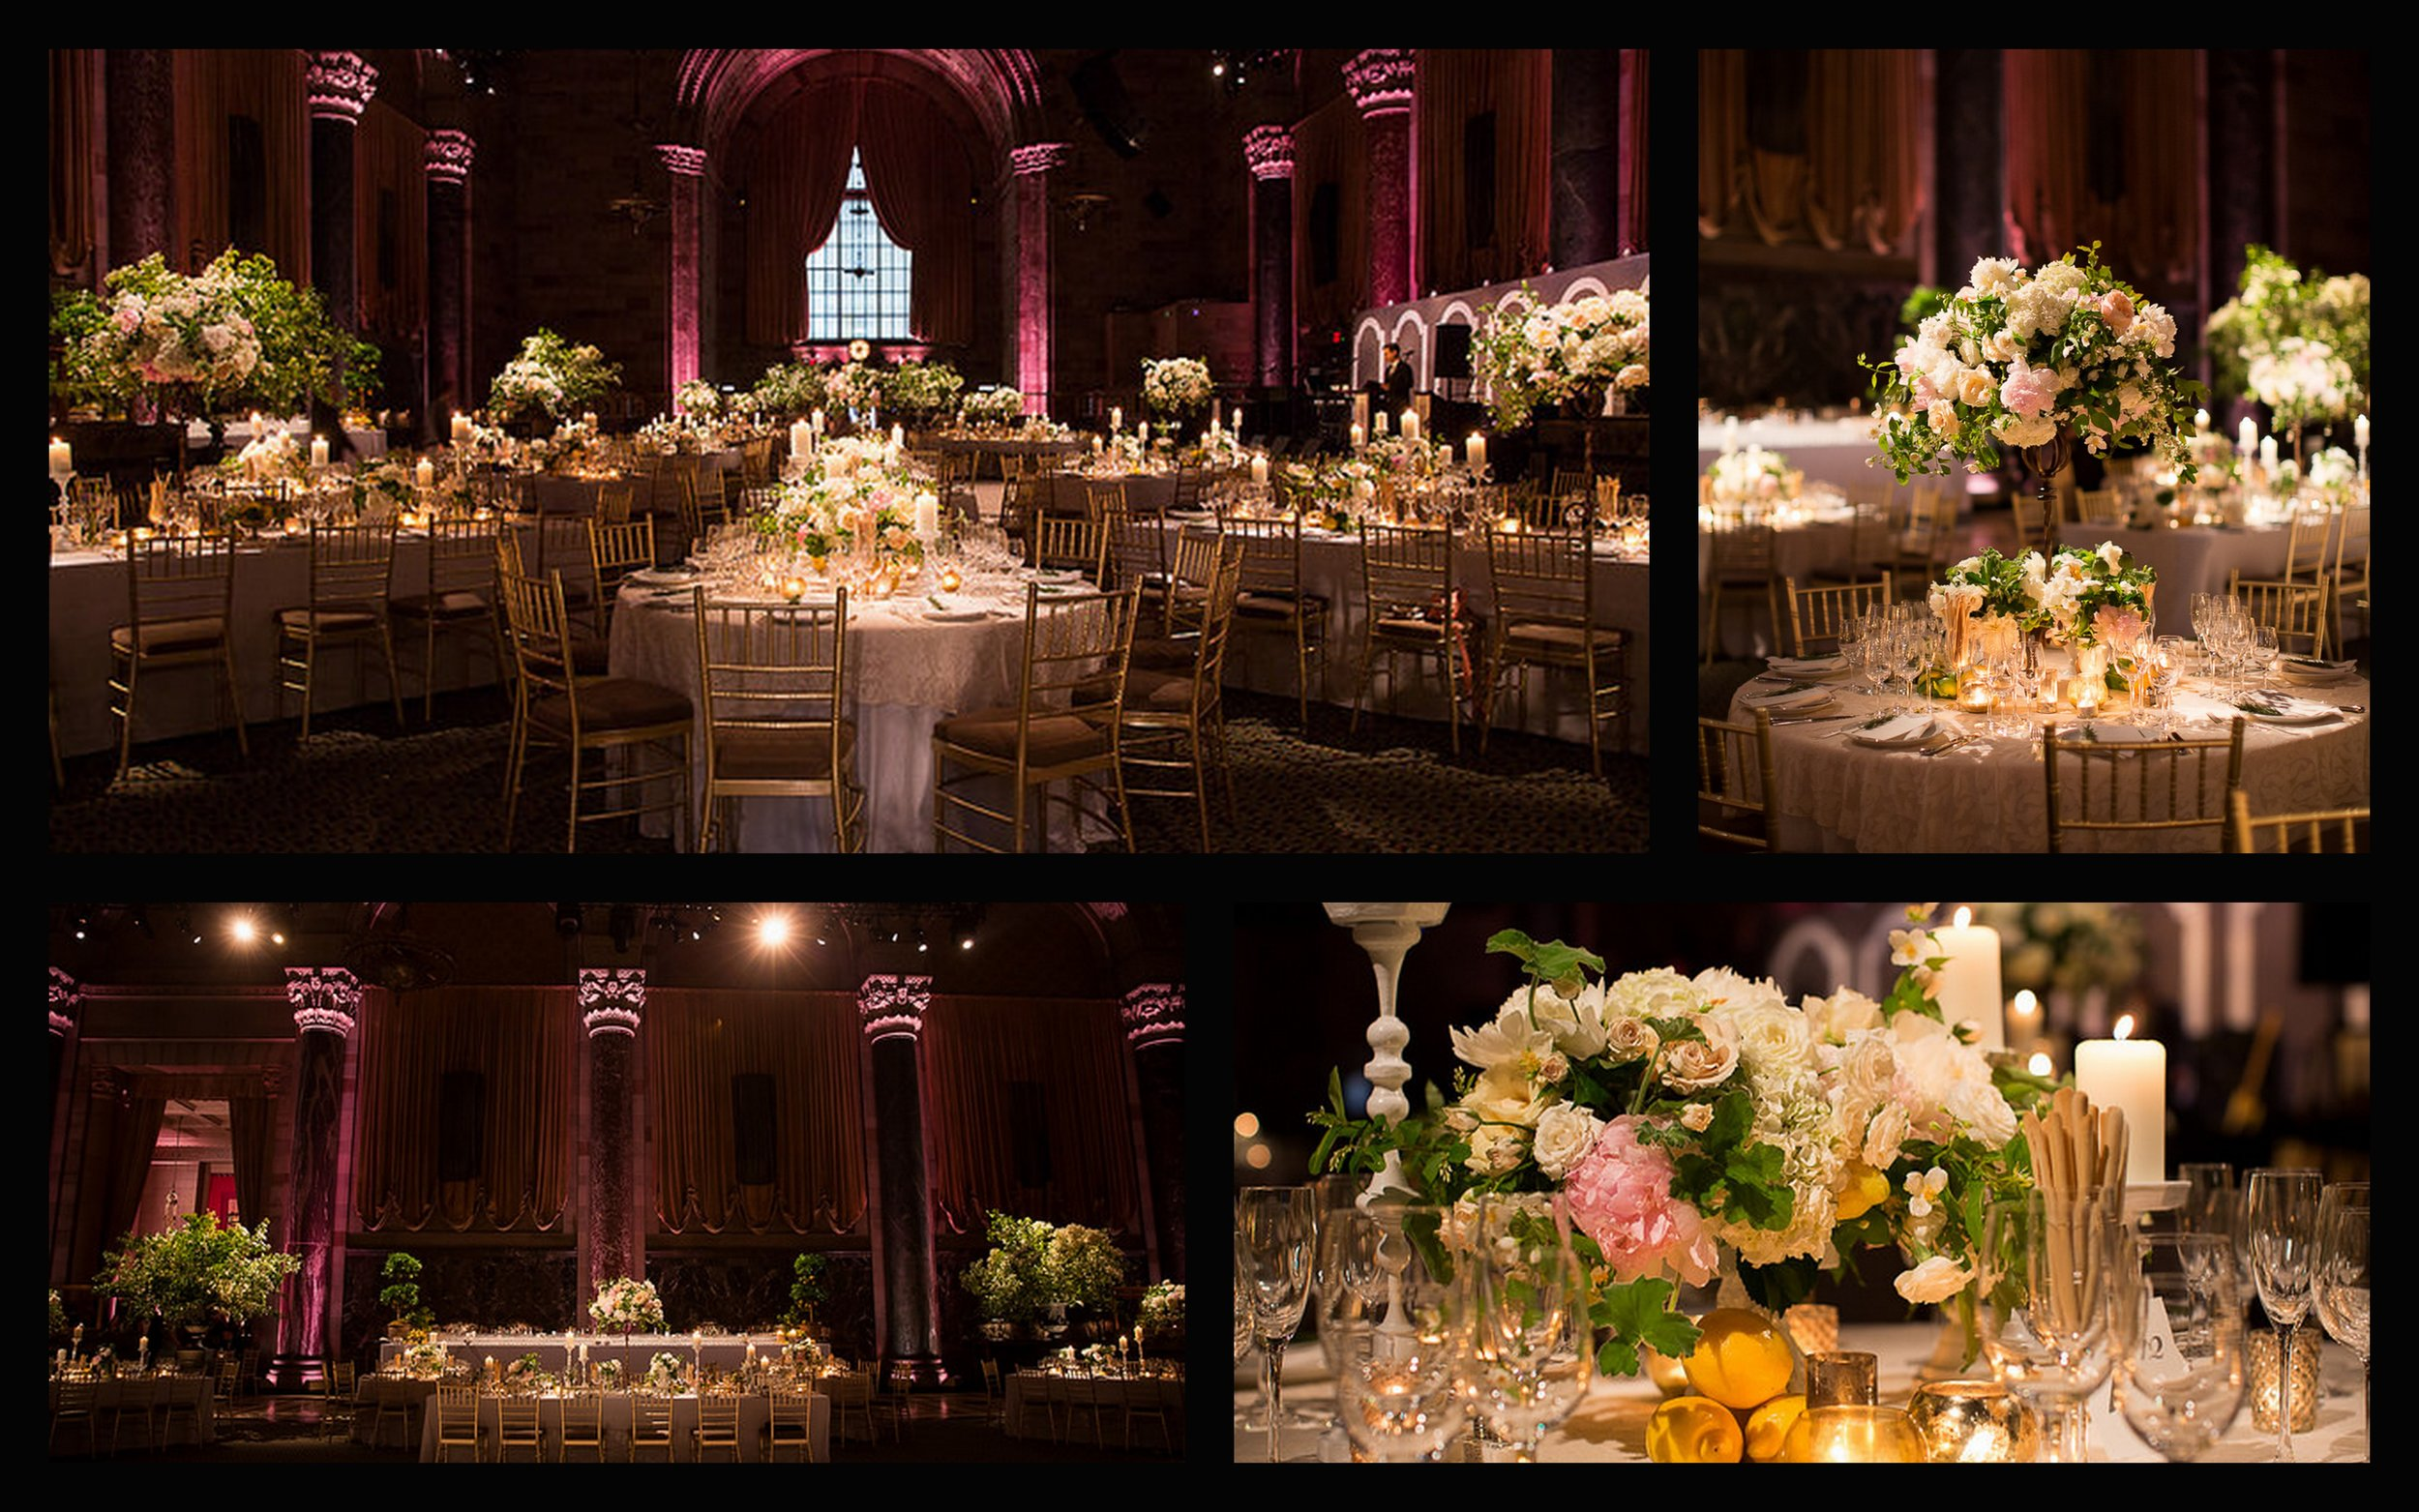 Cipriani 42nd Street, Lemon centerpieces, wedding lighting